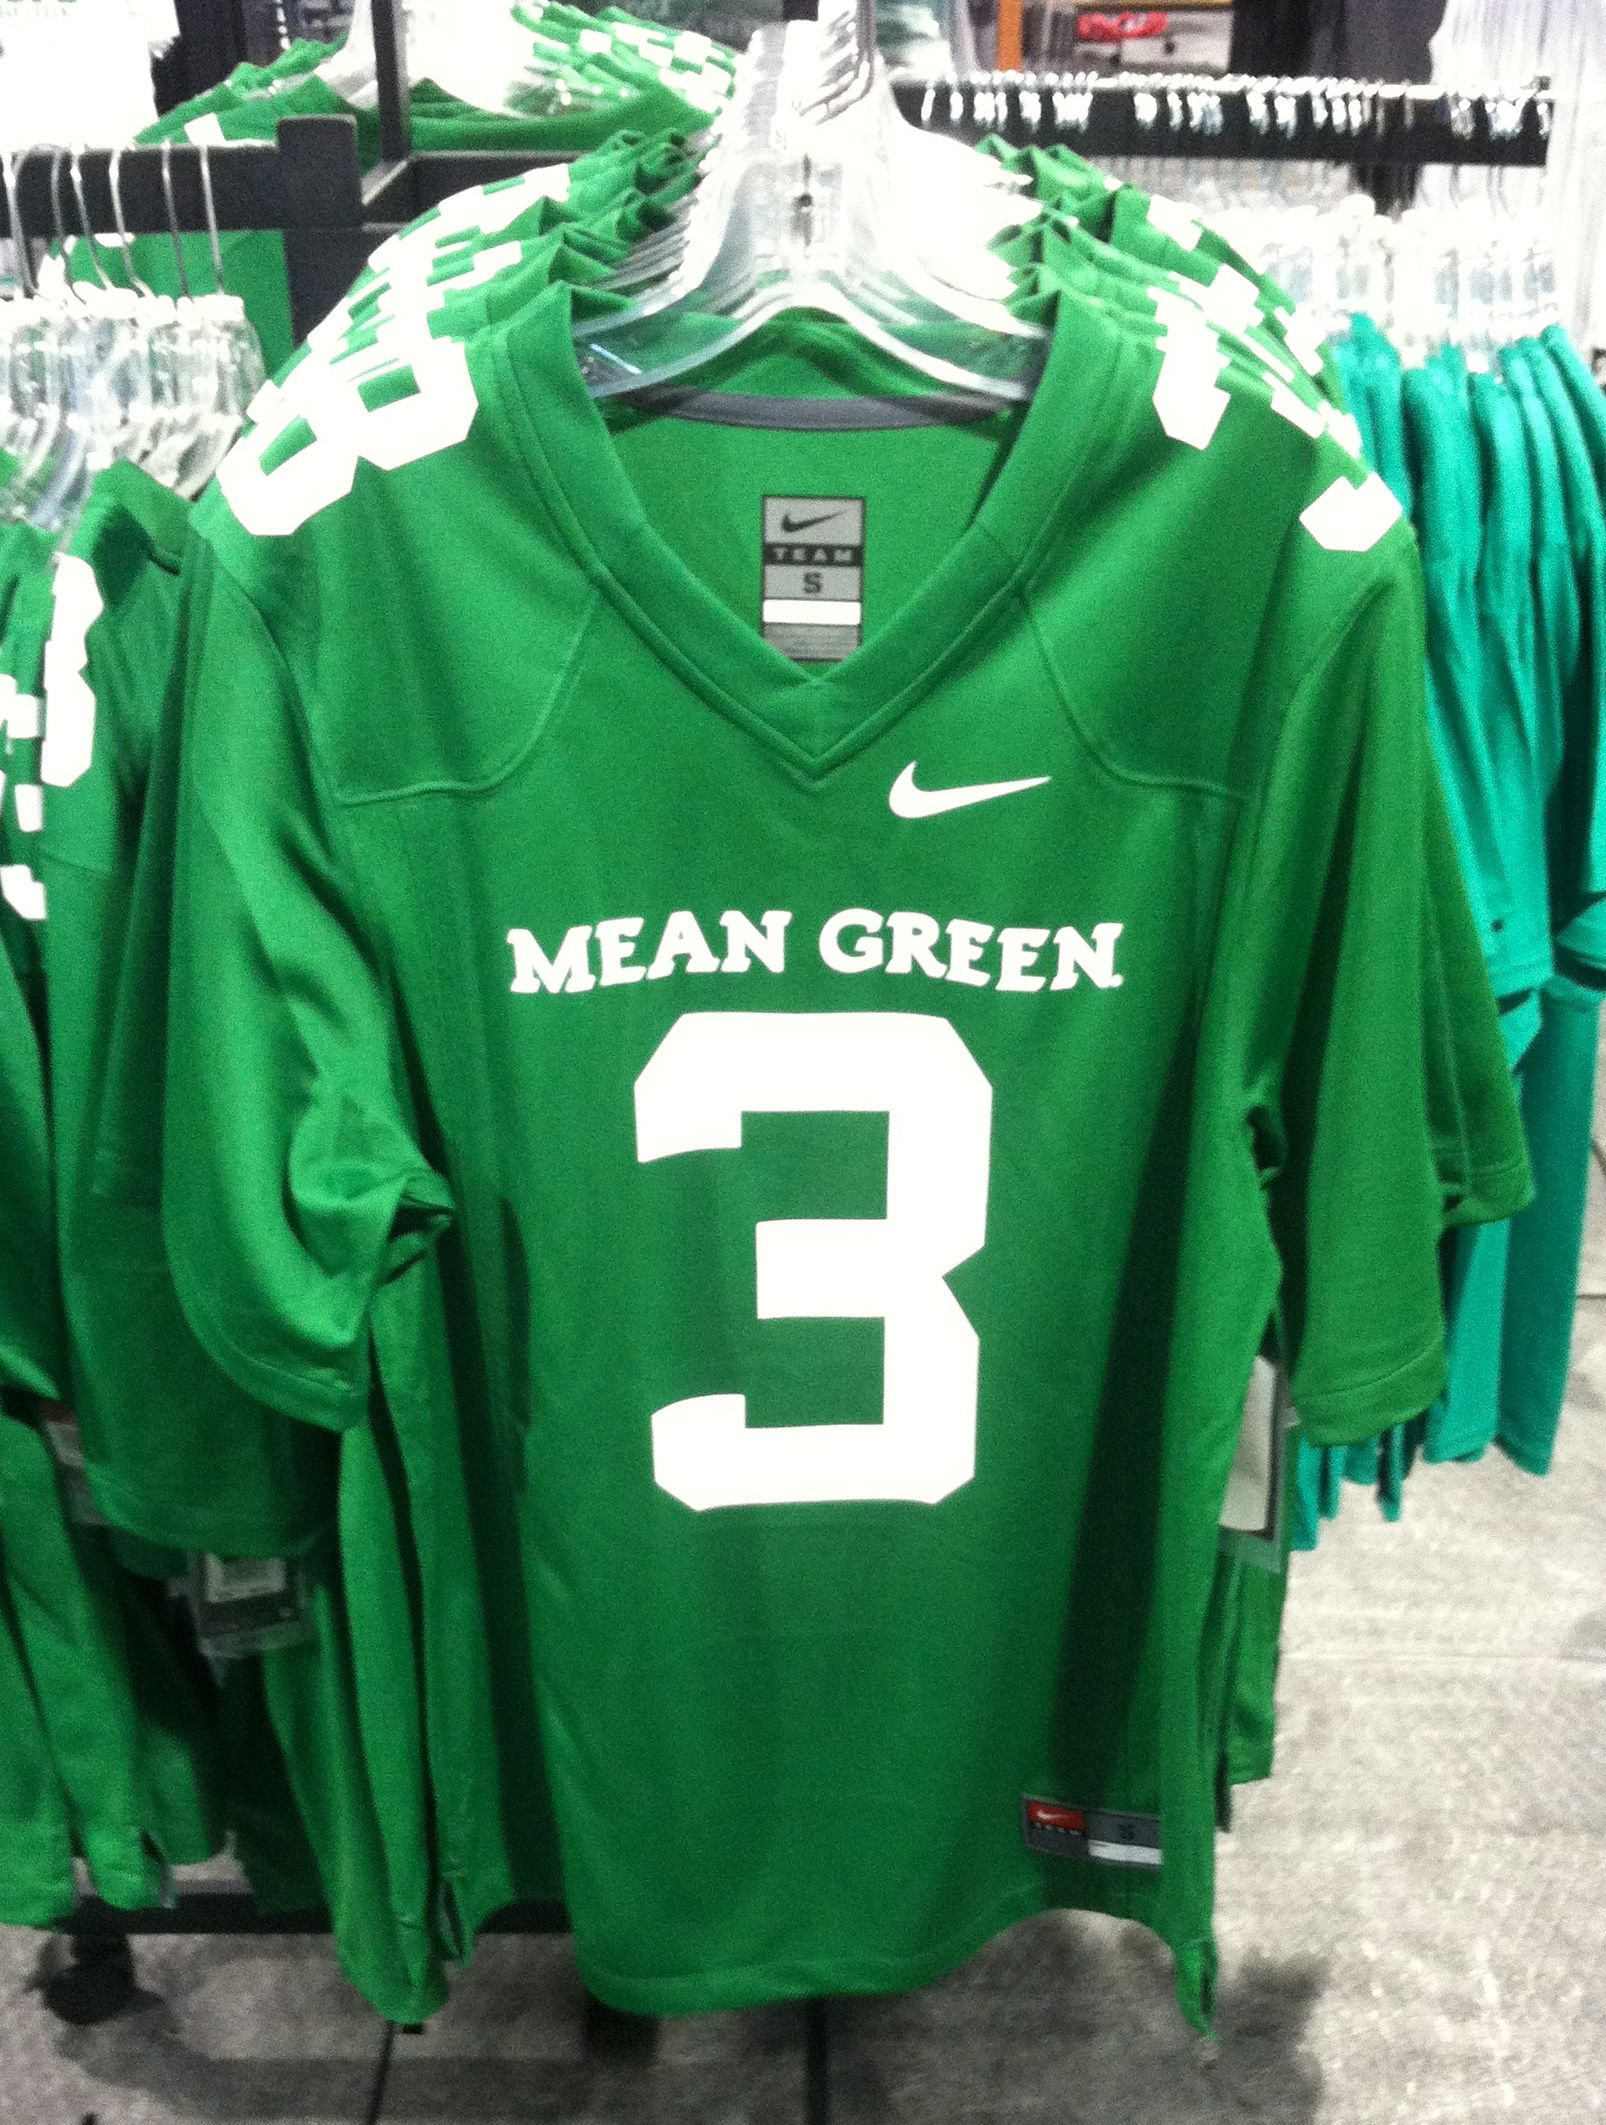 0165ec3242a7 Want a jersey just like the players  Go get your replica Nike North Texas  Mean Green jersey for  90.00 at the UNT Barnes and Noble bookstore white  tent